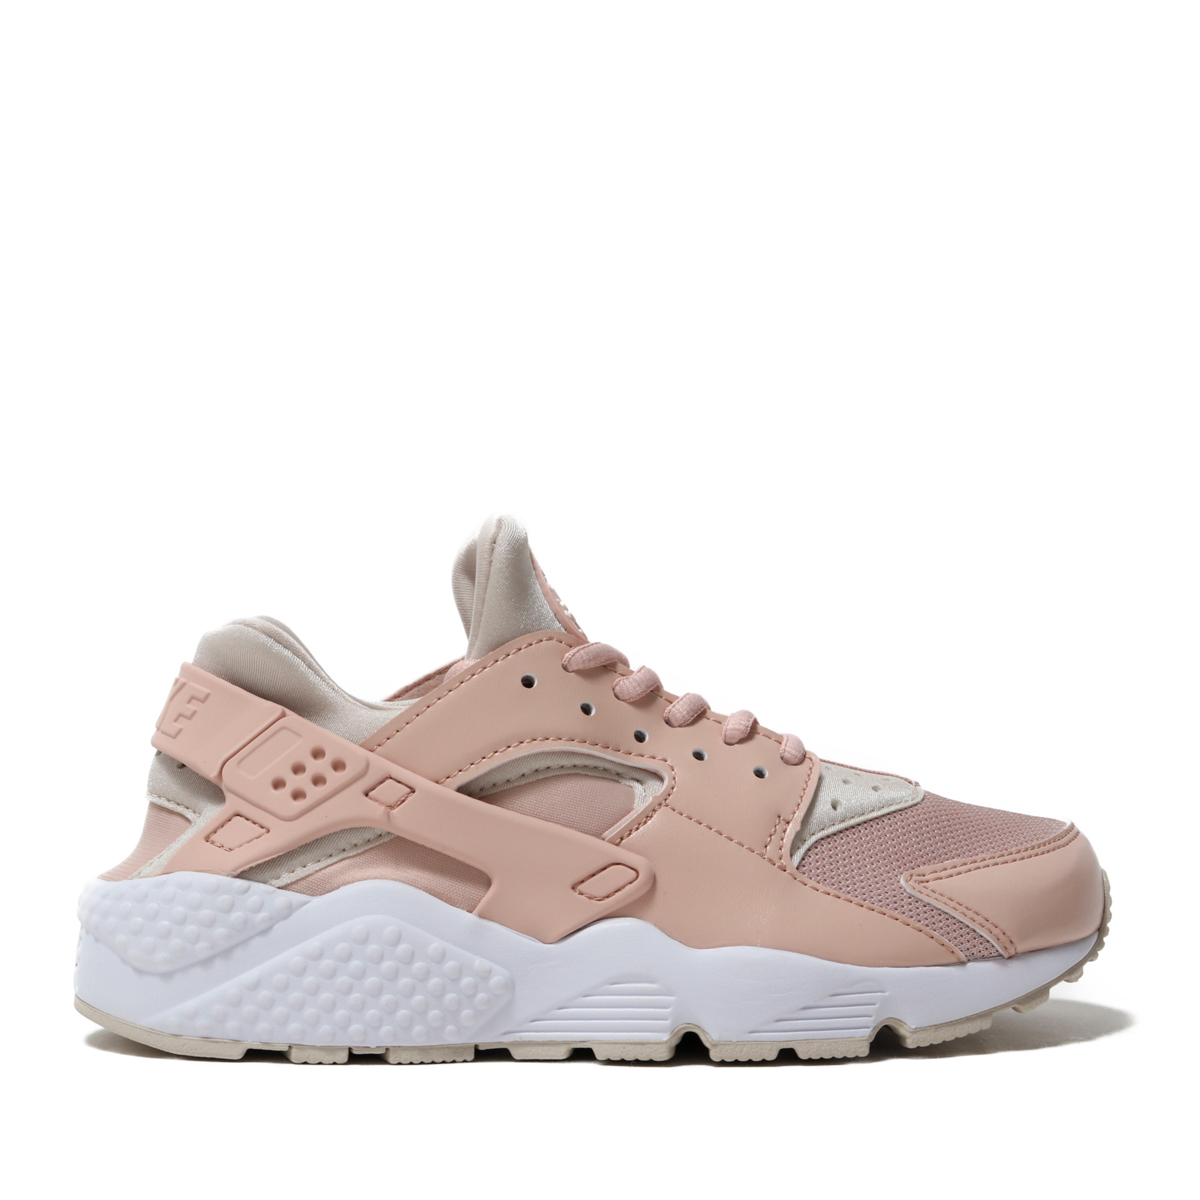 super popular a21a2 170a7 NIKE WMNS AIR HUARACHE RUN (PARTICLE BEIGE DESERT SAND-WHITE)  (ナイキウィメンズエアハラチラン)